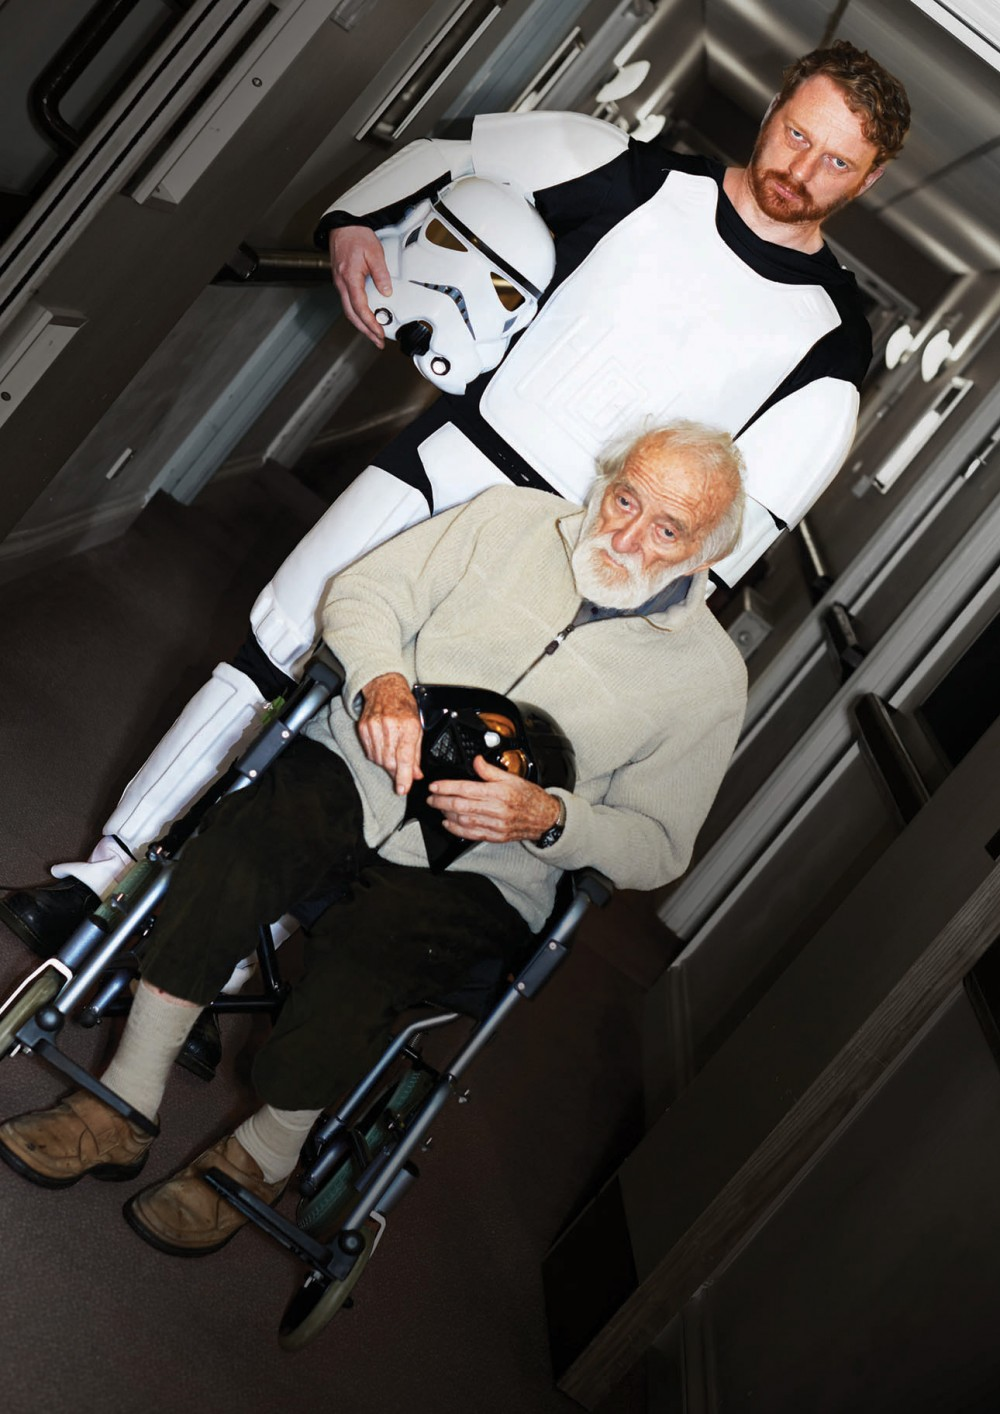 Kim Noble is dressed as a Storm Trooper, he is pushing an old man in a wheel chair towards the us.